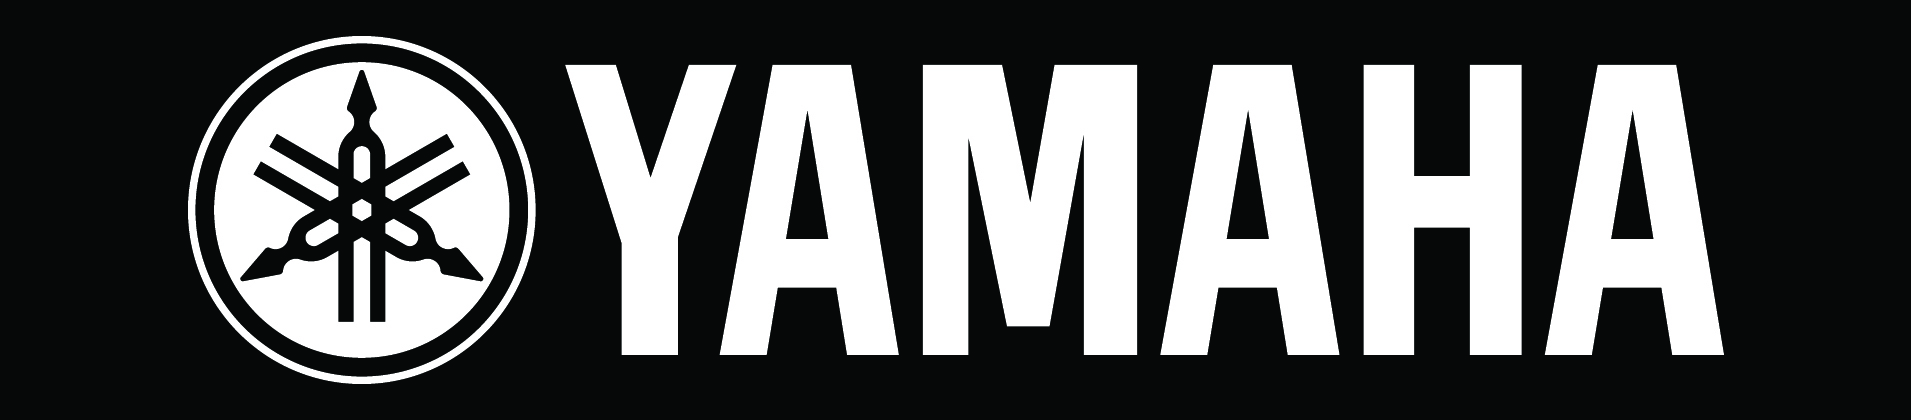 Yamaha Logo Quotes